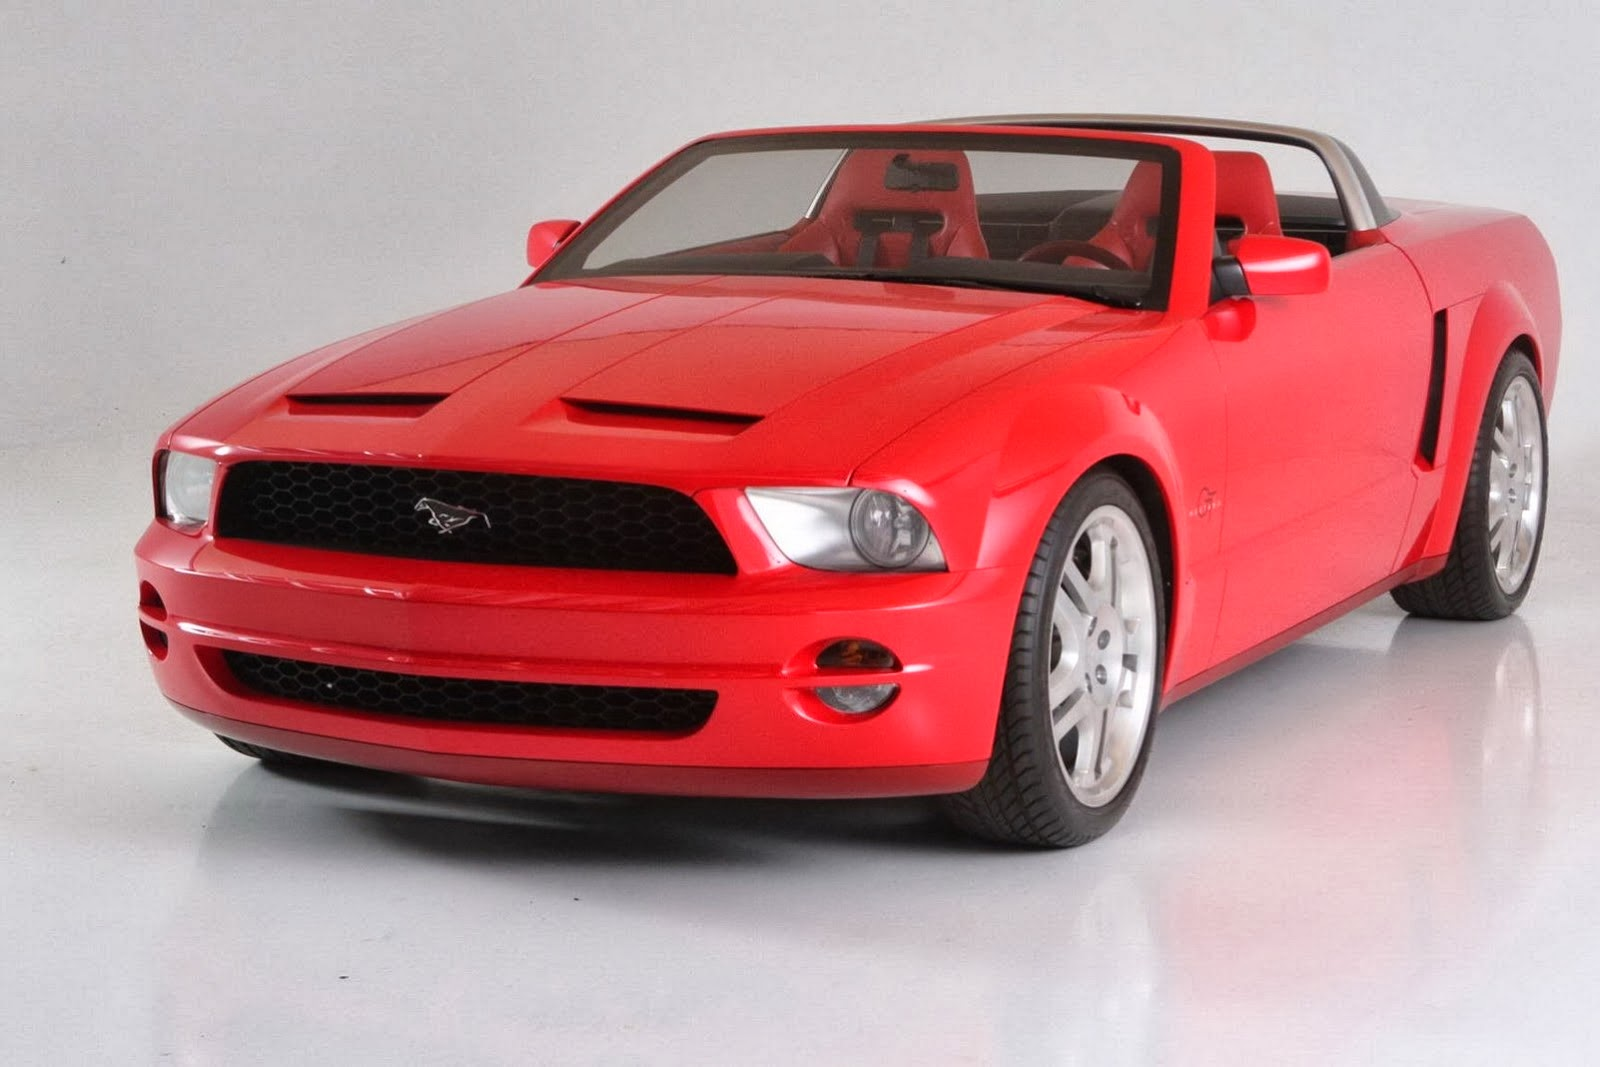 2003 Ford Mustang GT Convertible Concept photo - 3